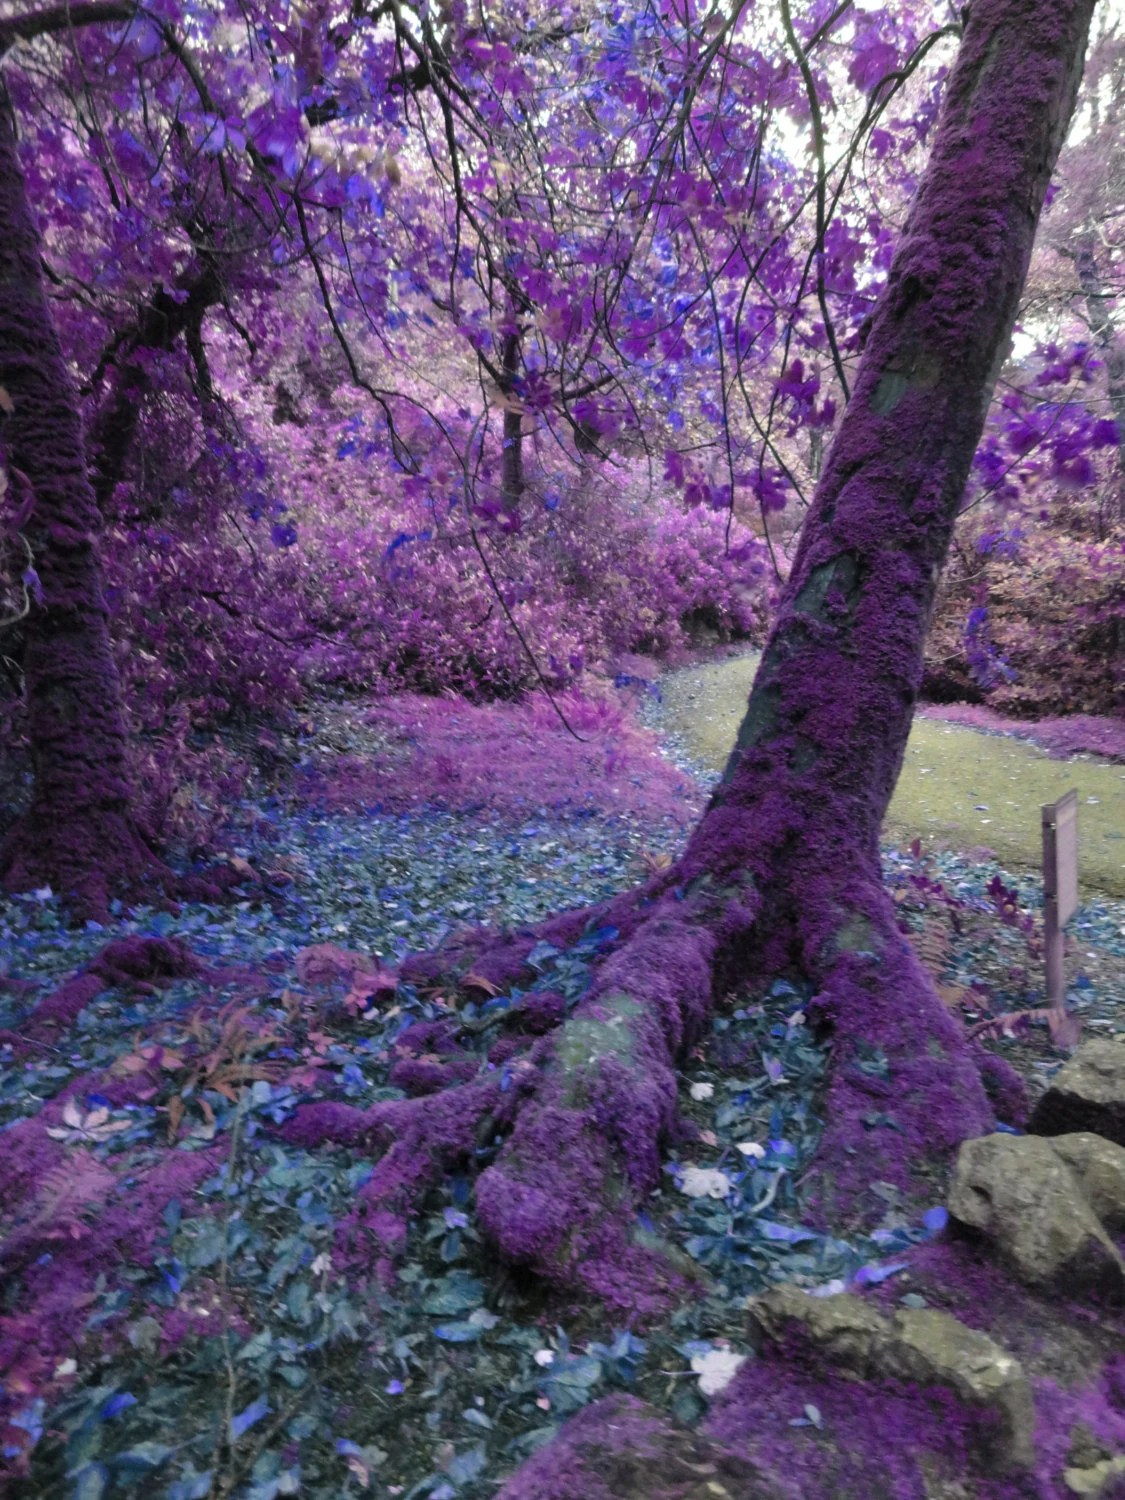 Hd Wallpaper Fall Leaf Change Mysterious Trees Photography 8 X 10 Purple Fairy Trees